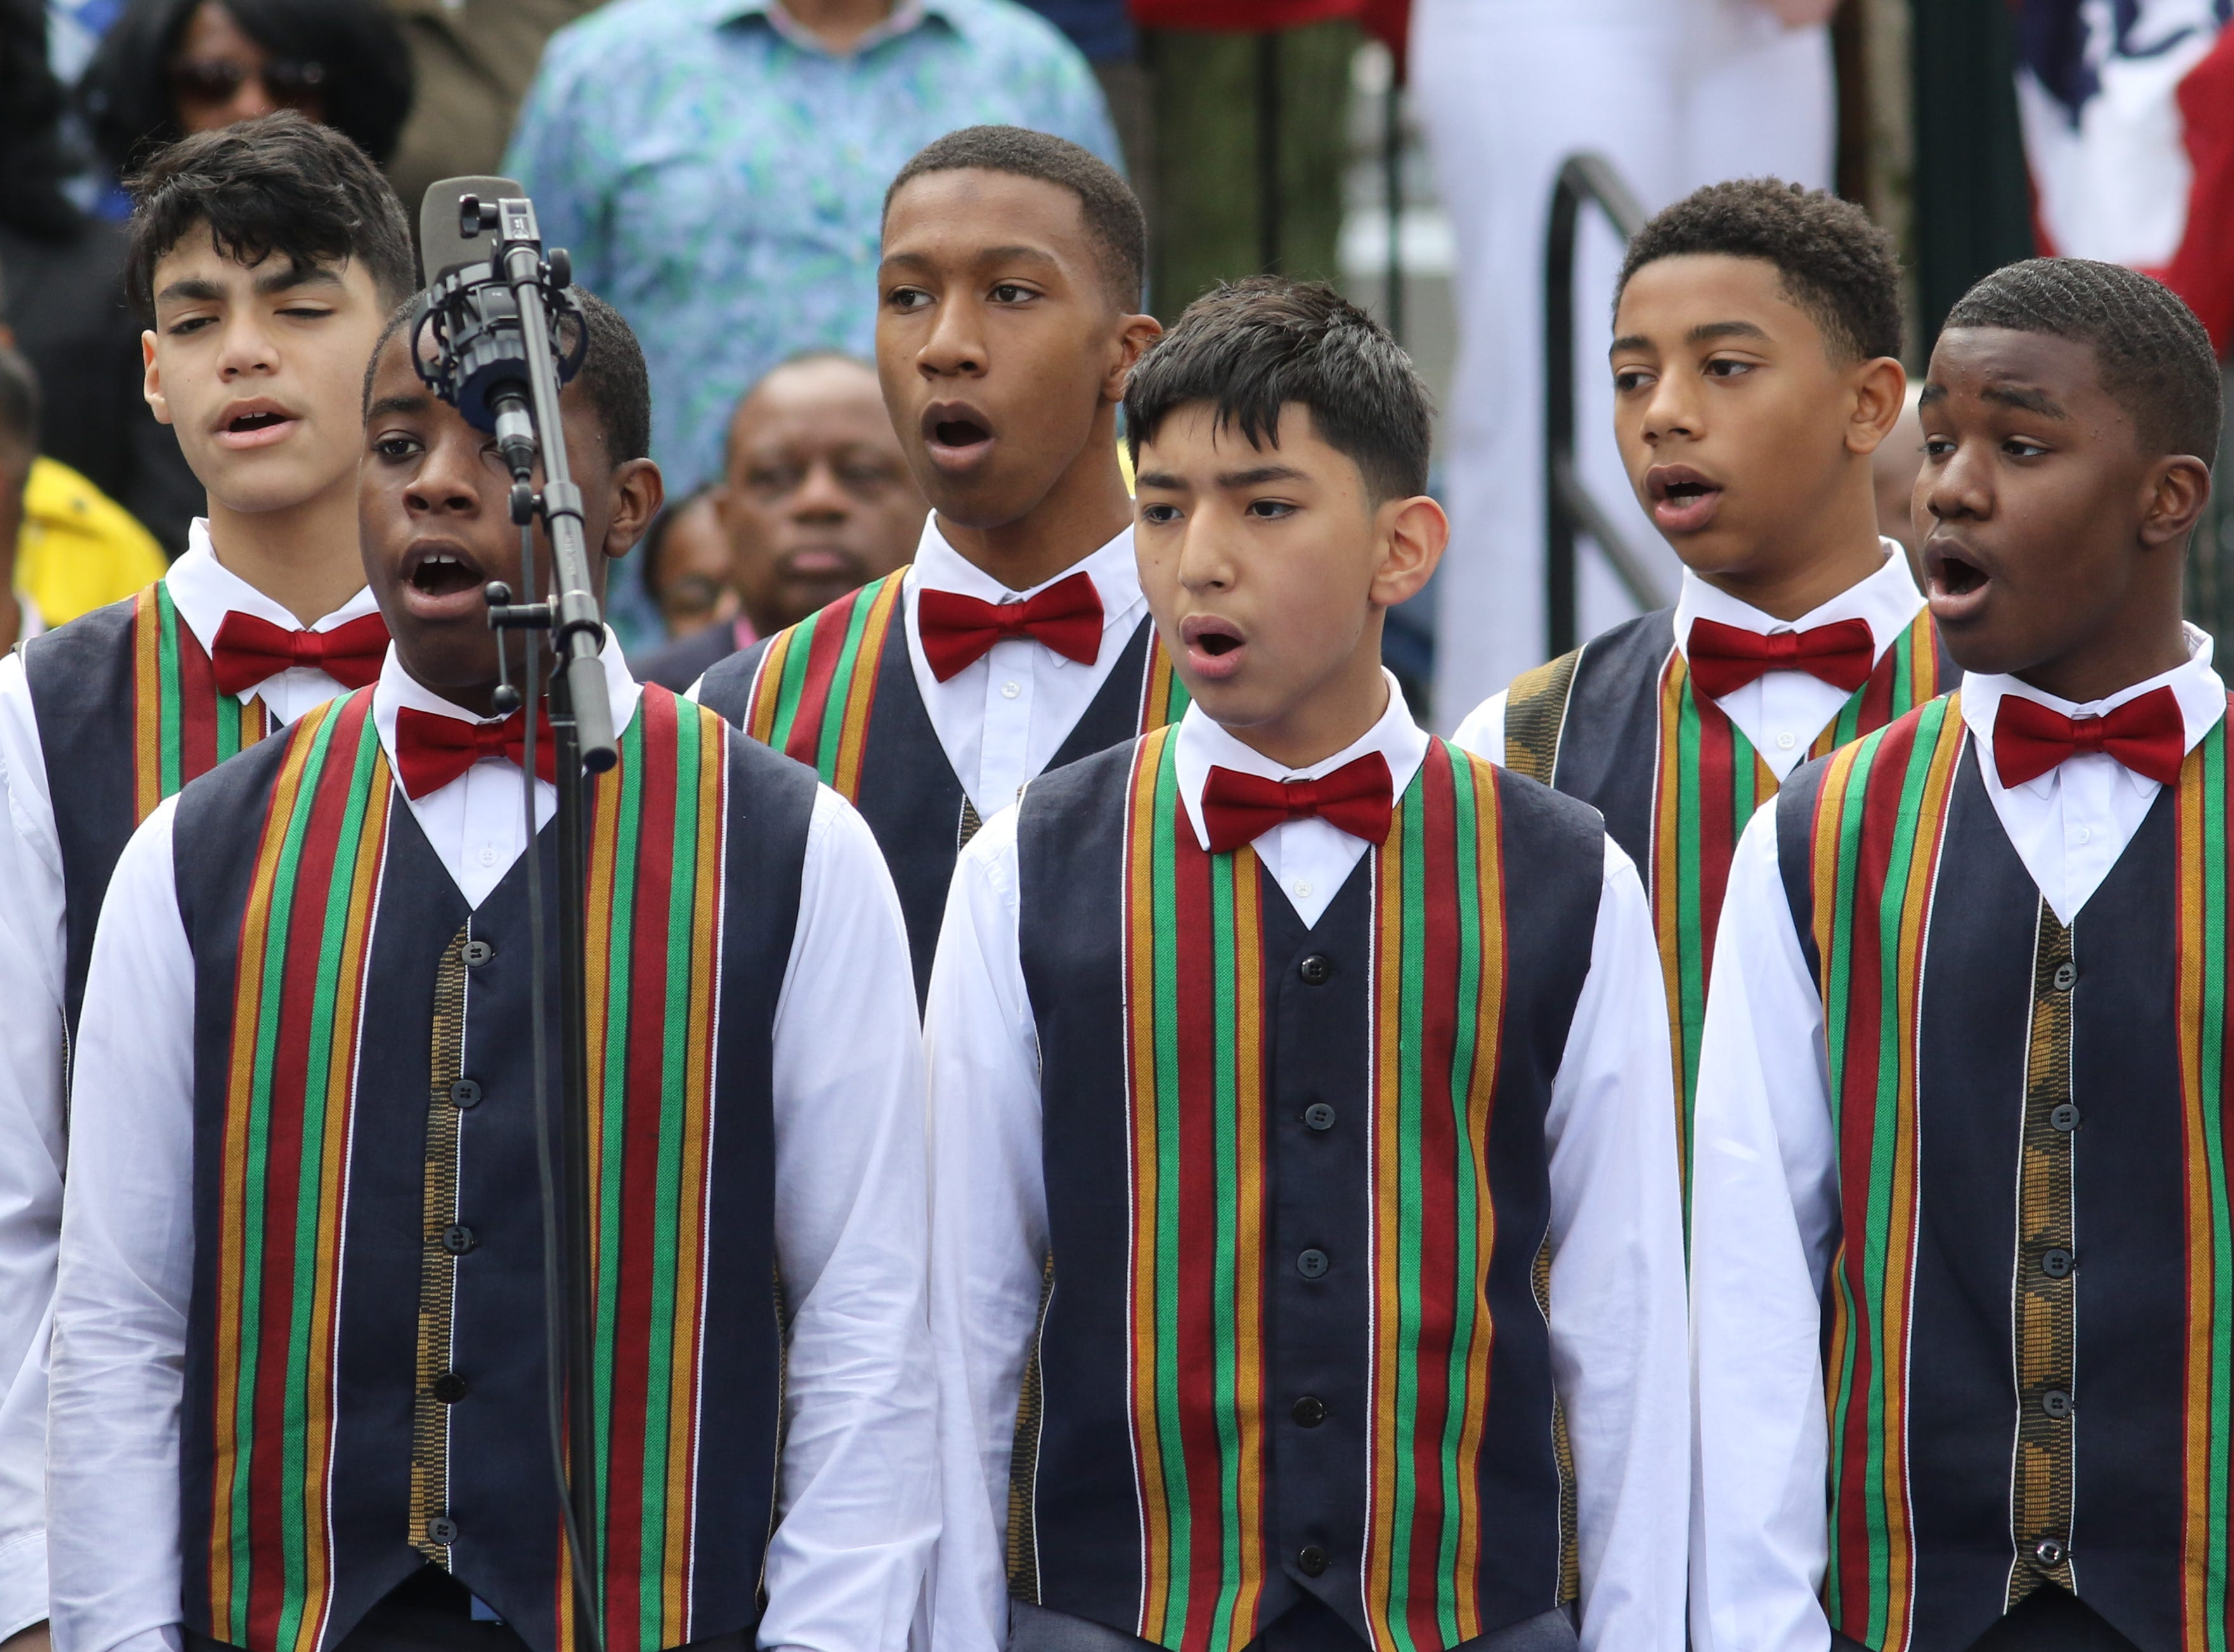 The Newark Boys Choir sings before a rally to kick off the Cory Booker campaign for president was held at Military Park in Newark on April 13, 2019.